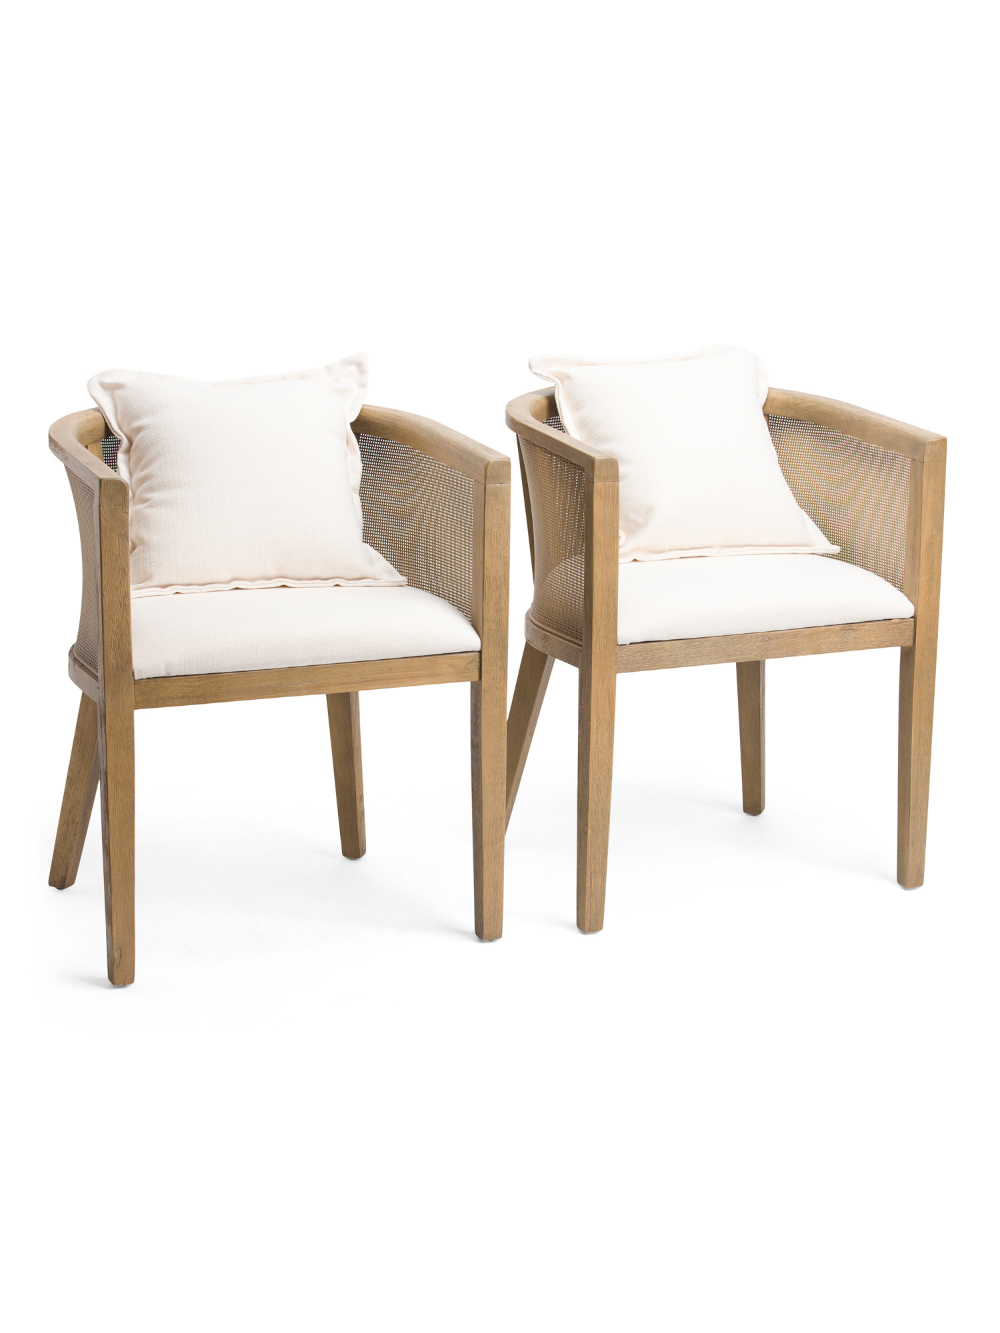 Set Of 2 Cane Round Back Chairs Accent Furniture T.J